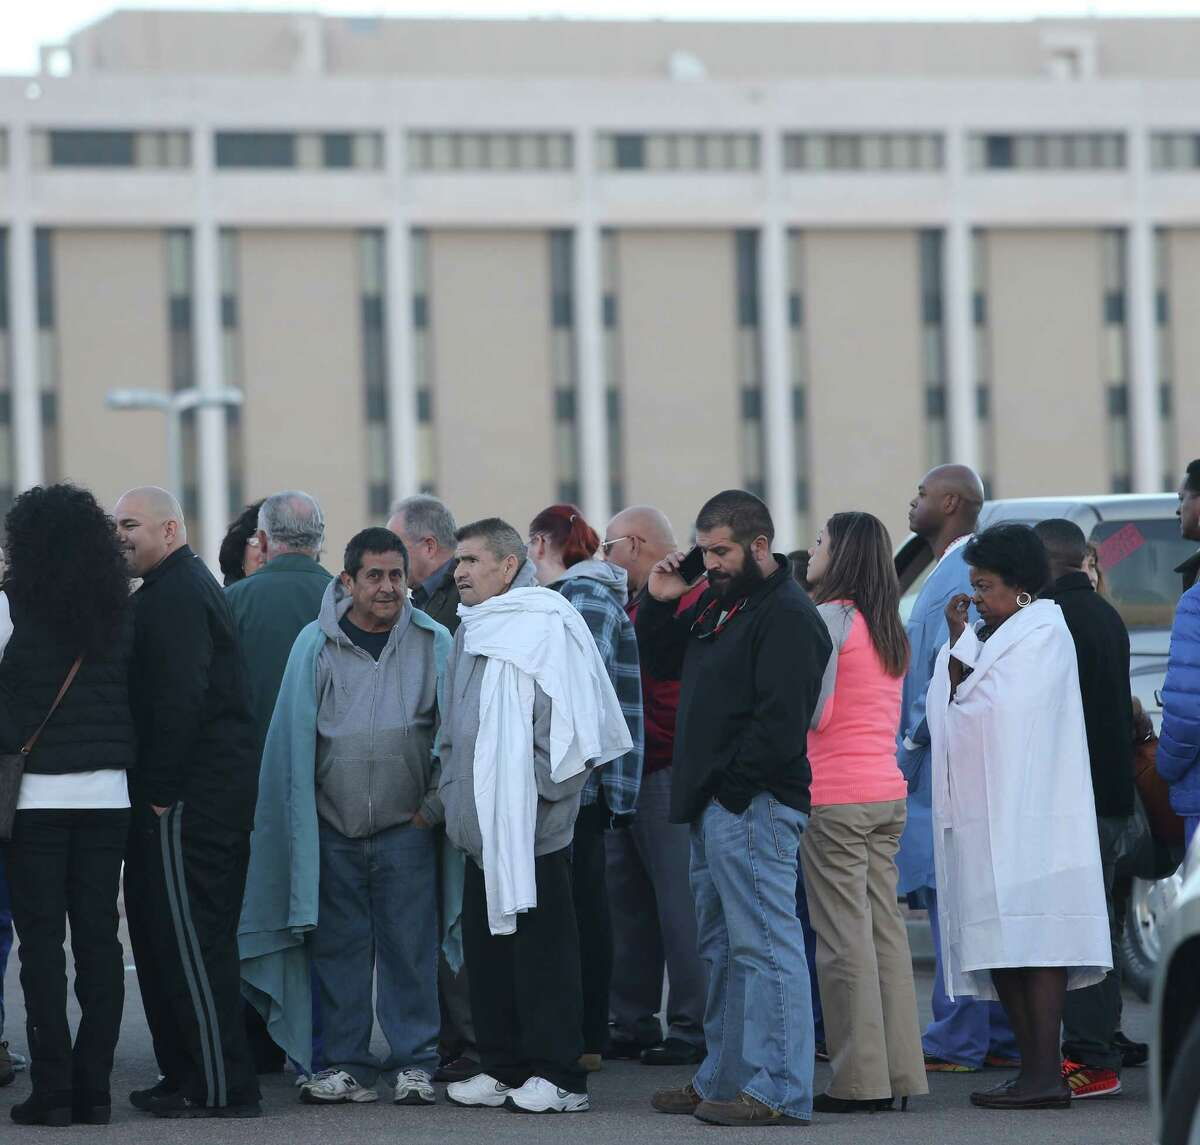 People were gathered in a parking lot outside the El Paso VA following a shooting inside the faciity Tuesday, Jan. 6, 2015. A gunman opened fire at a veterans' medical clinic in West Texas on Tuesday, killing one other person, officials said. The gunman was also killed. (AP Photo/The El Paso Times, Victor Calzada)